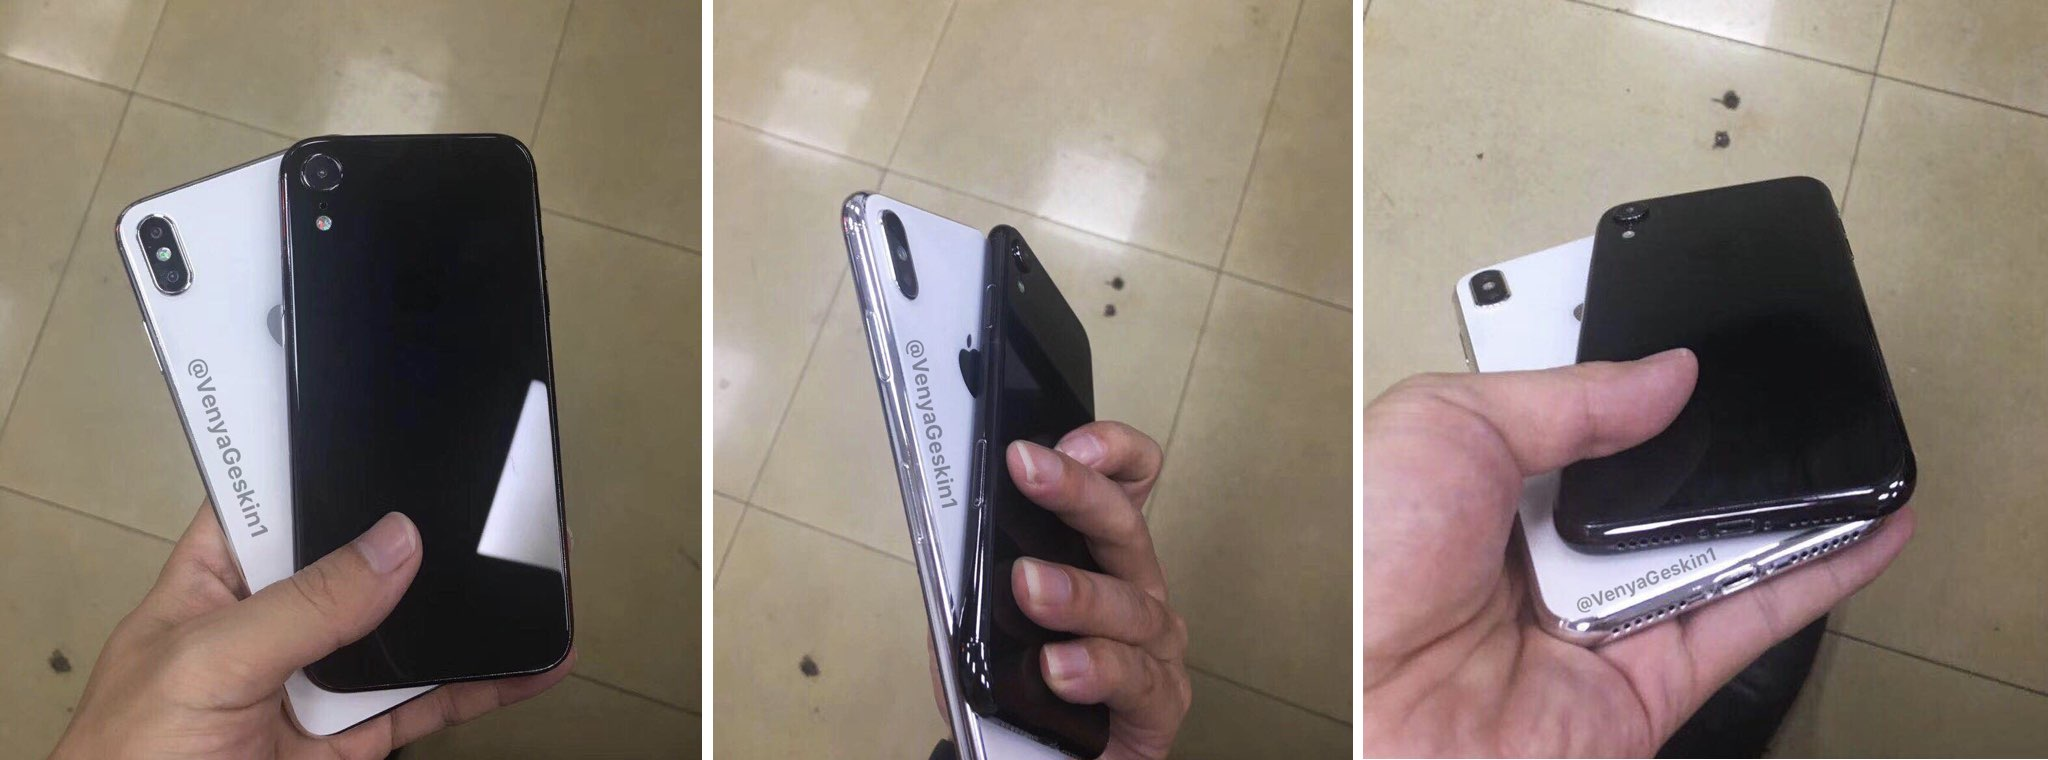 Leaked photos suggest so-called budget iPhone will have a single-lens camera